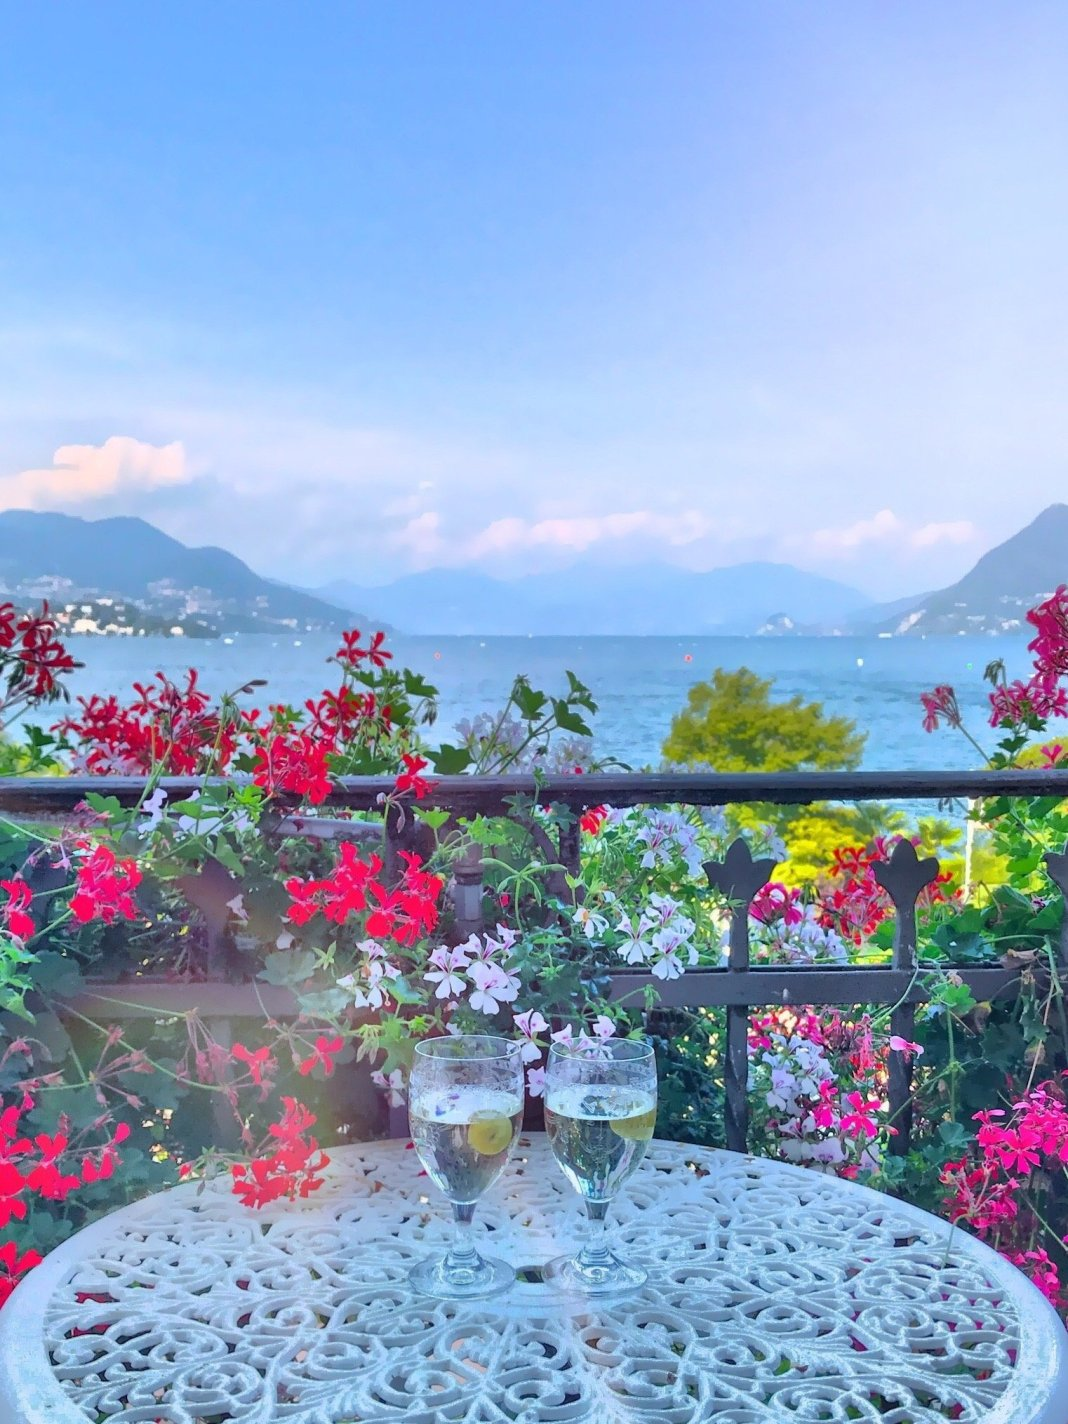 Room with a view. View from the balcony of the Grand Hotel Iles des Borromees in Stresa Italy